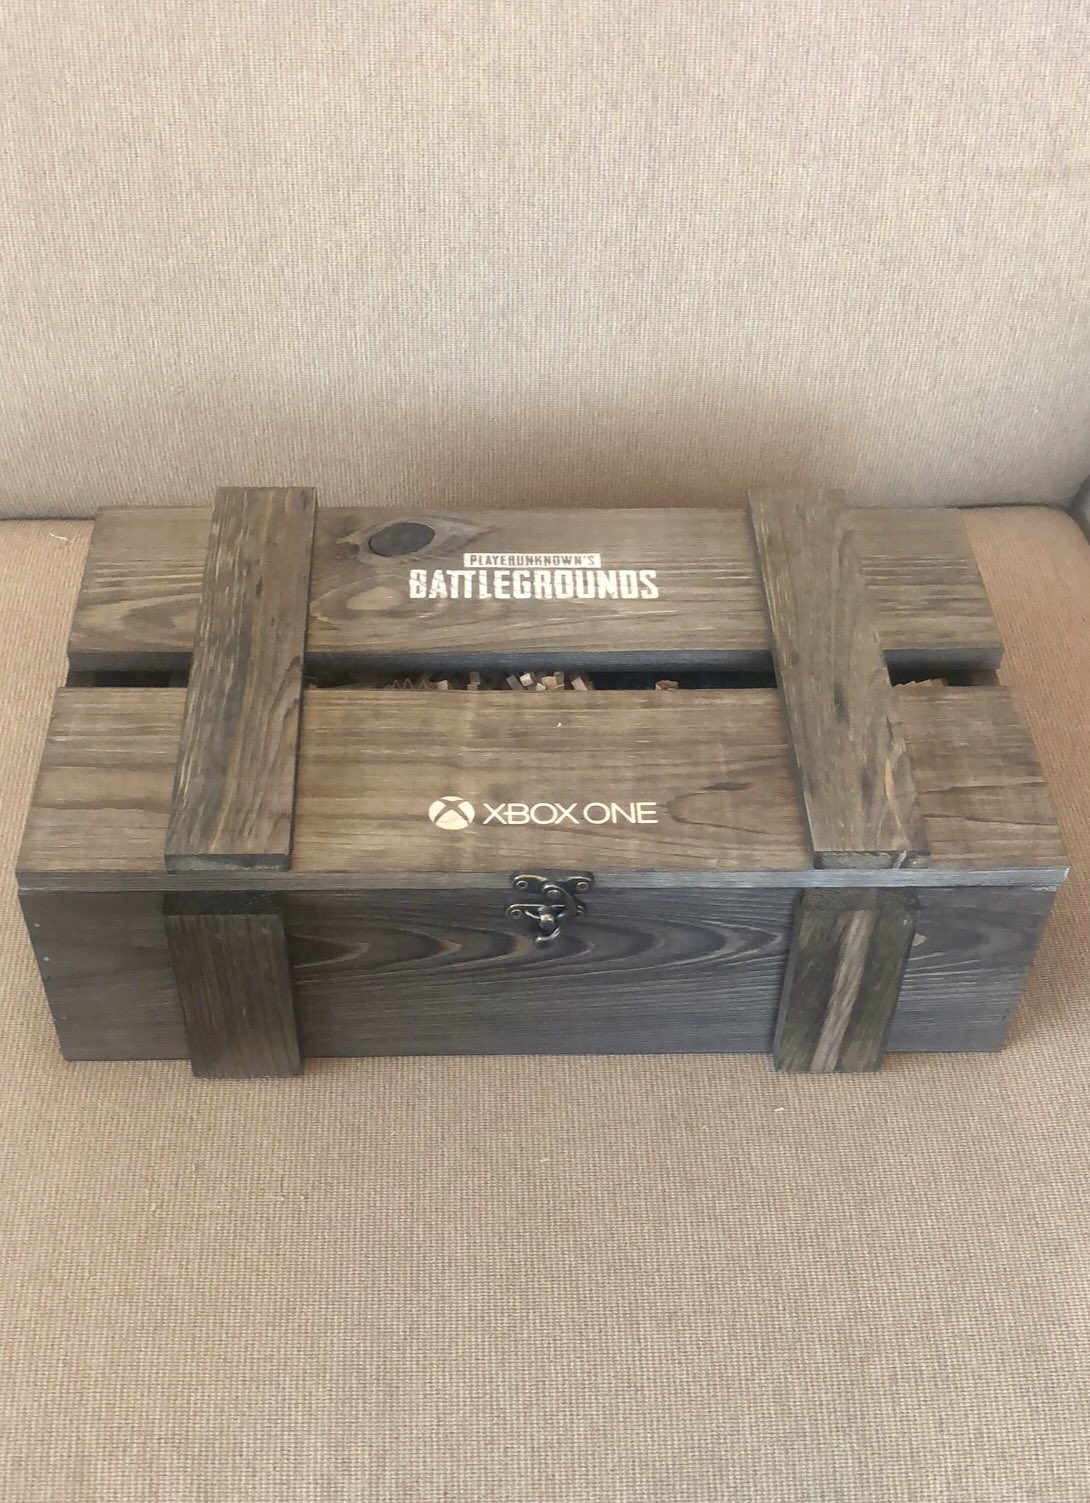 A lucky fan can RT to win one of these special @PUBATTLEGROUNDS on @Xbox One Air Drop Kits! ��������‍♂️ https://t.co/jT8DqmSMfy